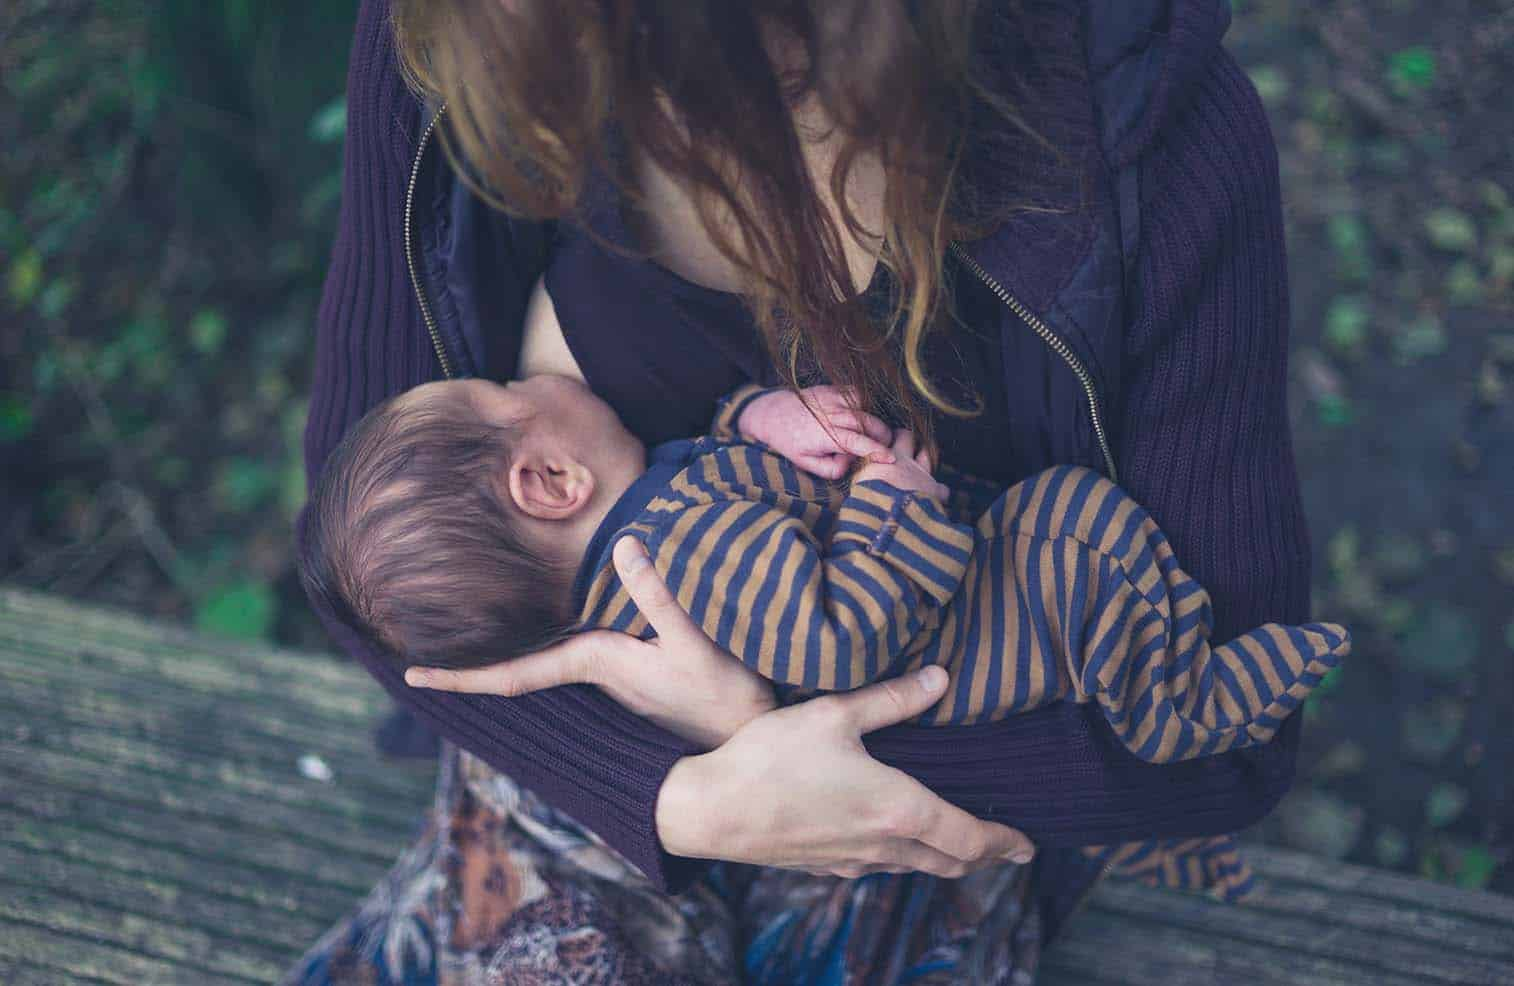 For some women breastfeeding comes easily, for others it takes a little more work. To help, these are some things you can do to make breastfeeding easier and more enjoyable.